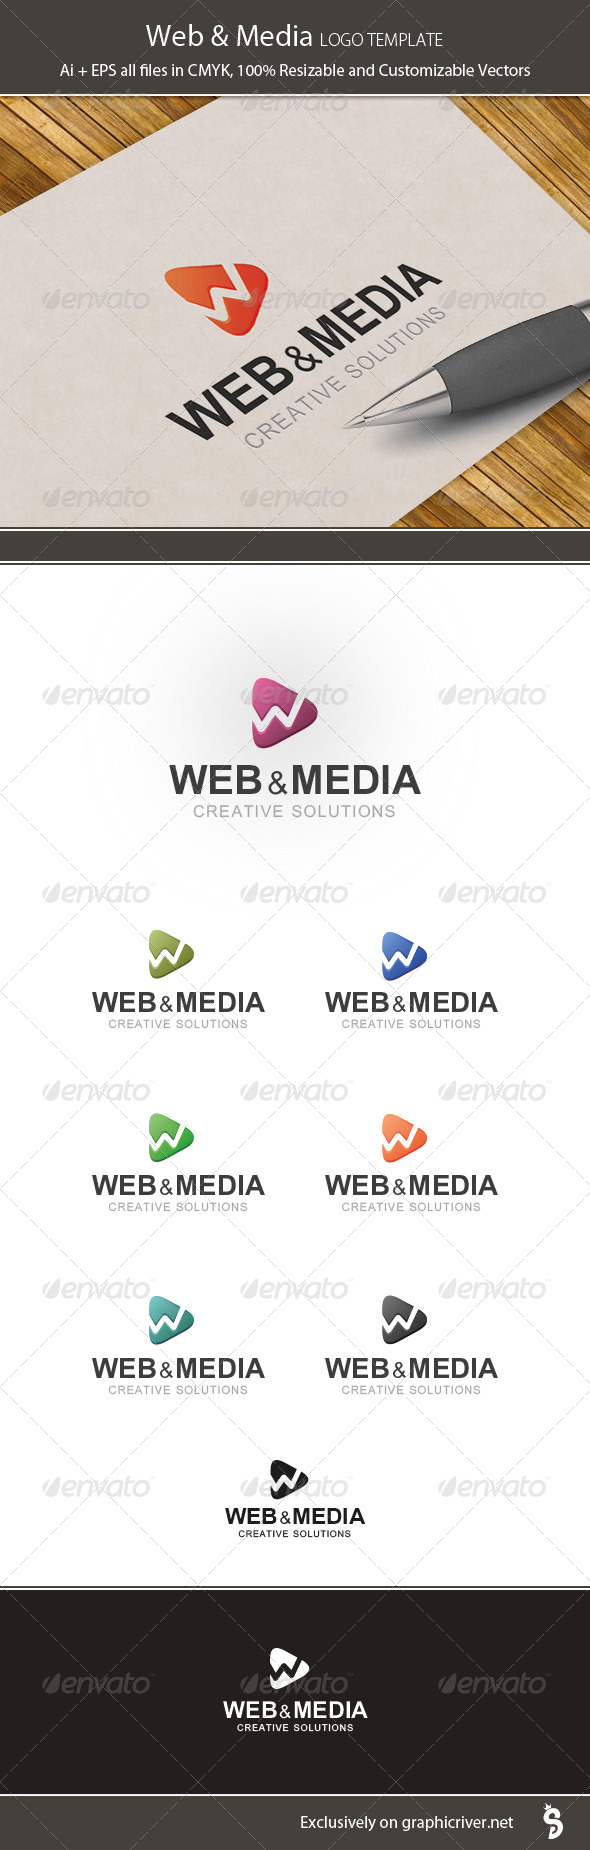 Web & Media Logo Template - Vector Abstract